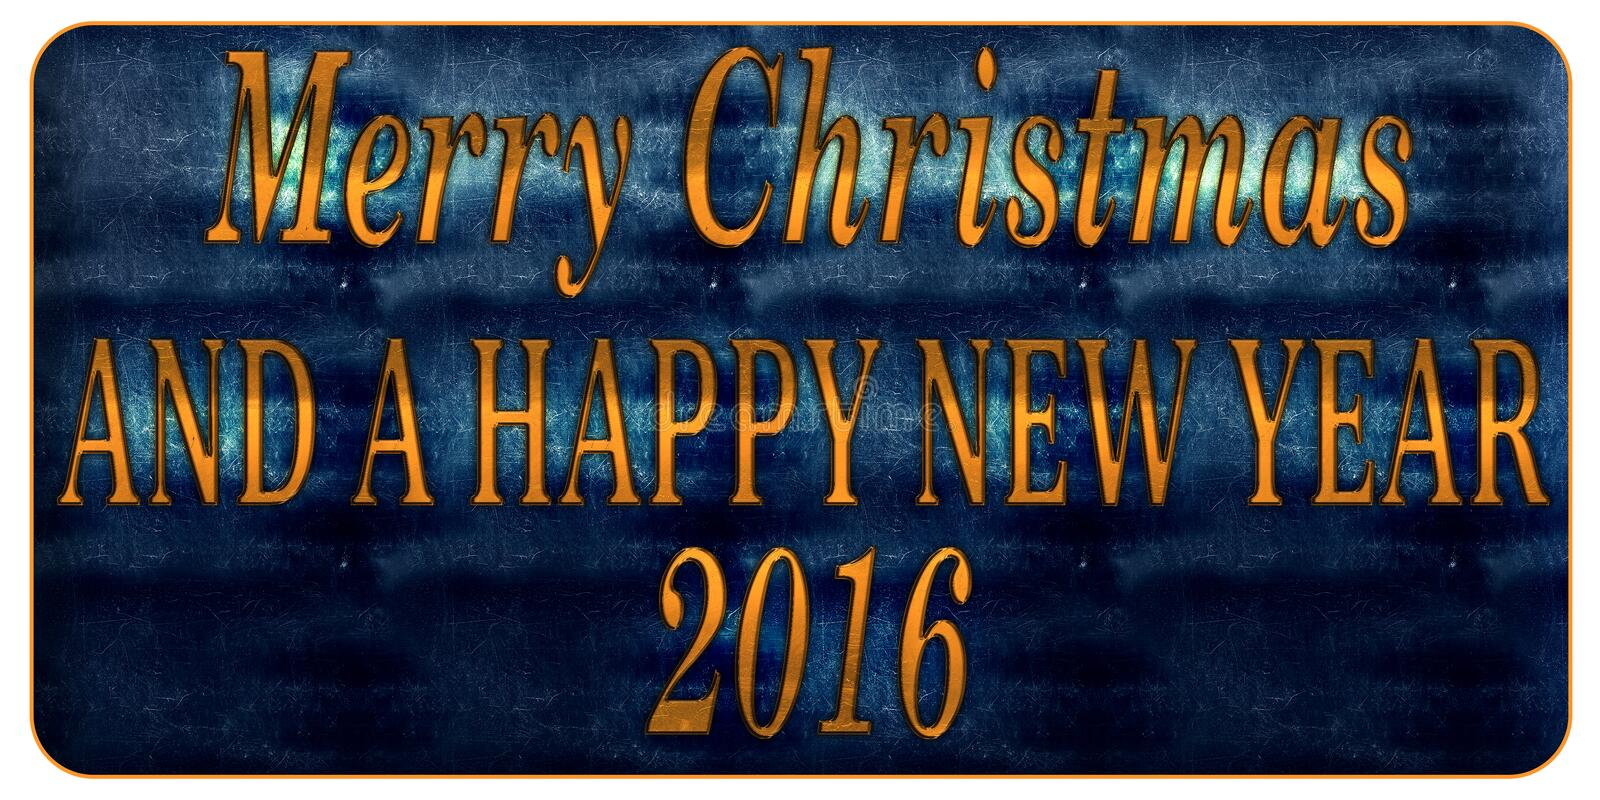 Merry Christmas and a happy New Year 2016 royalty free illustration